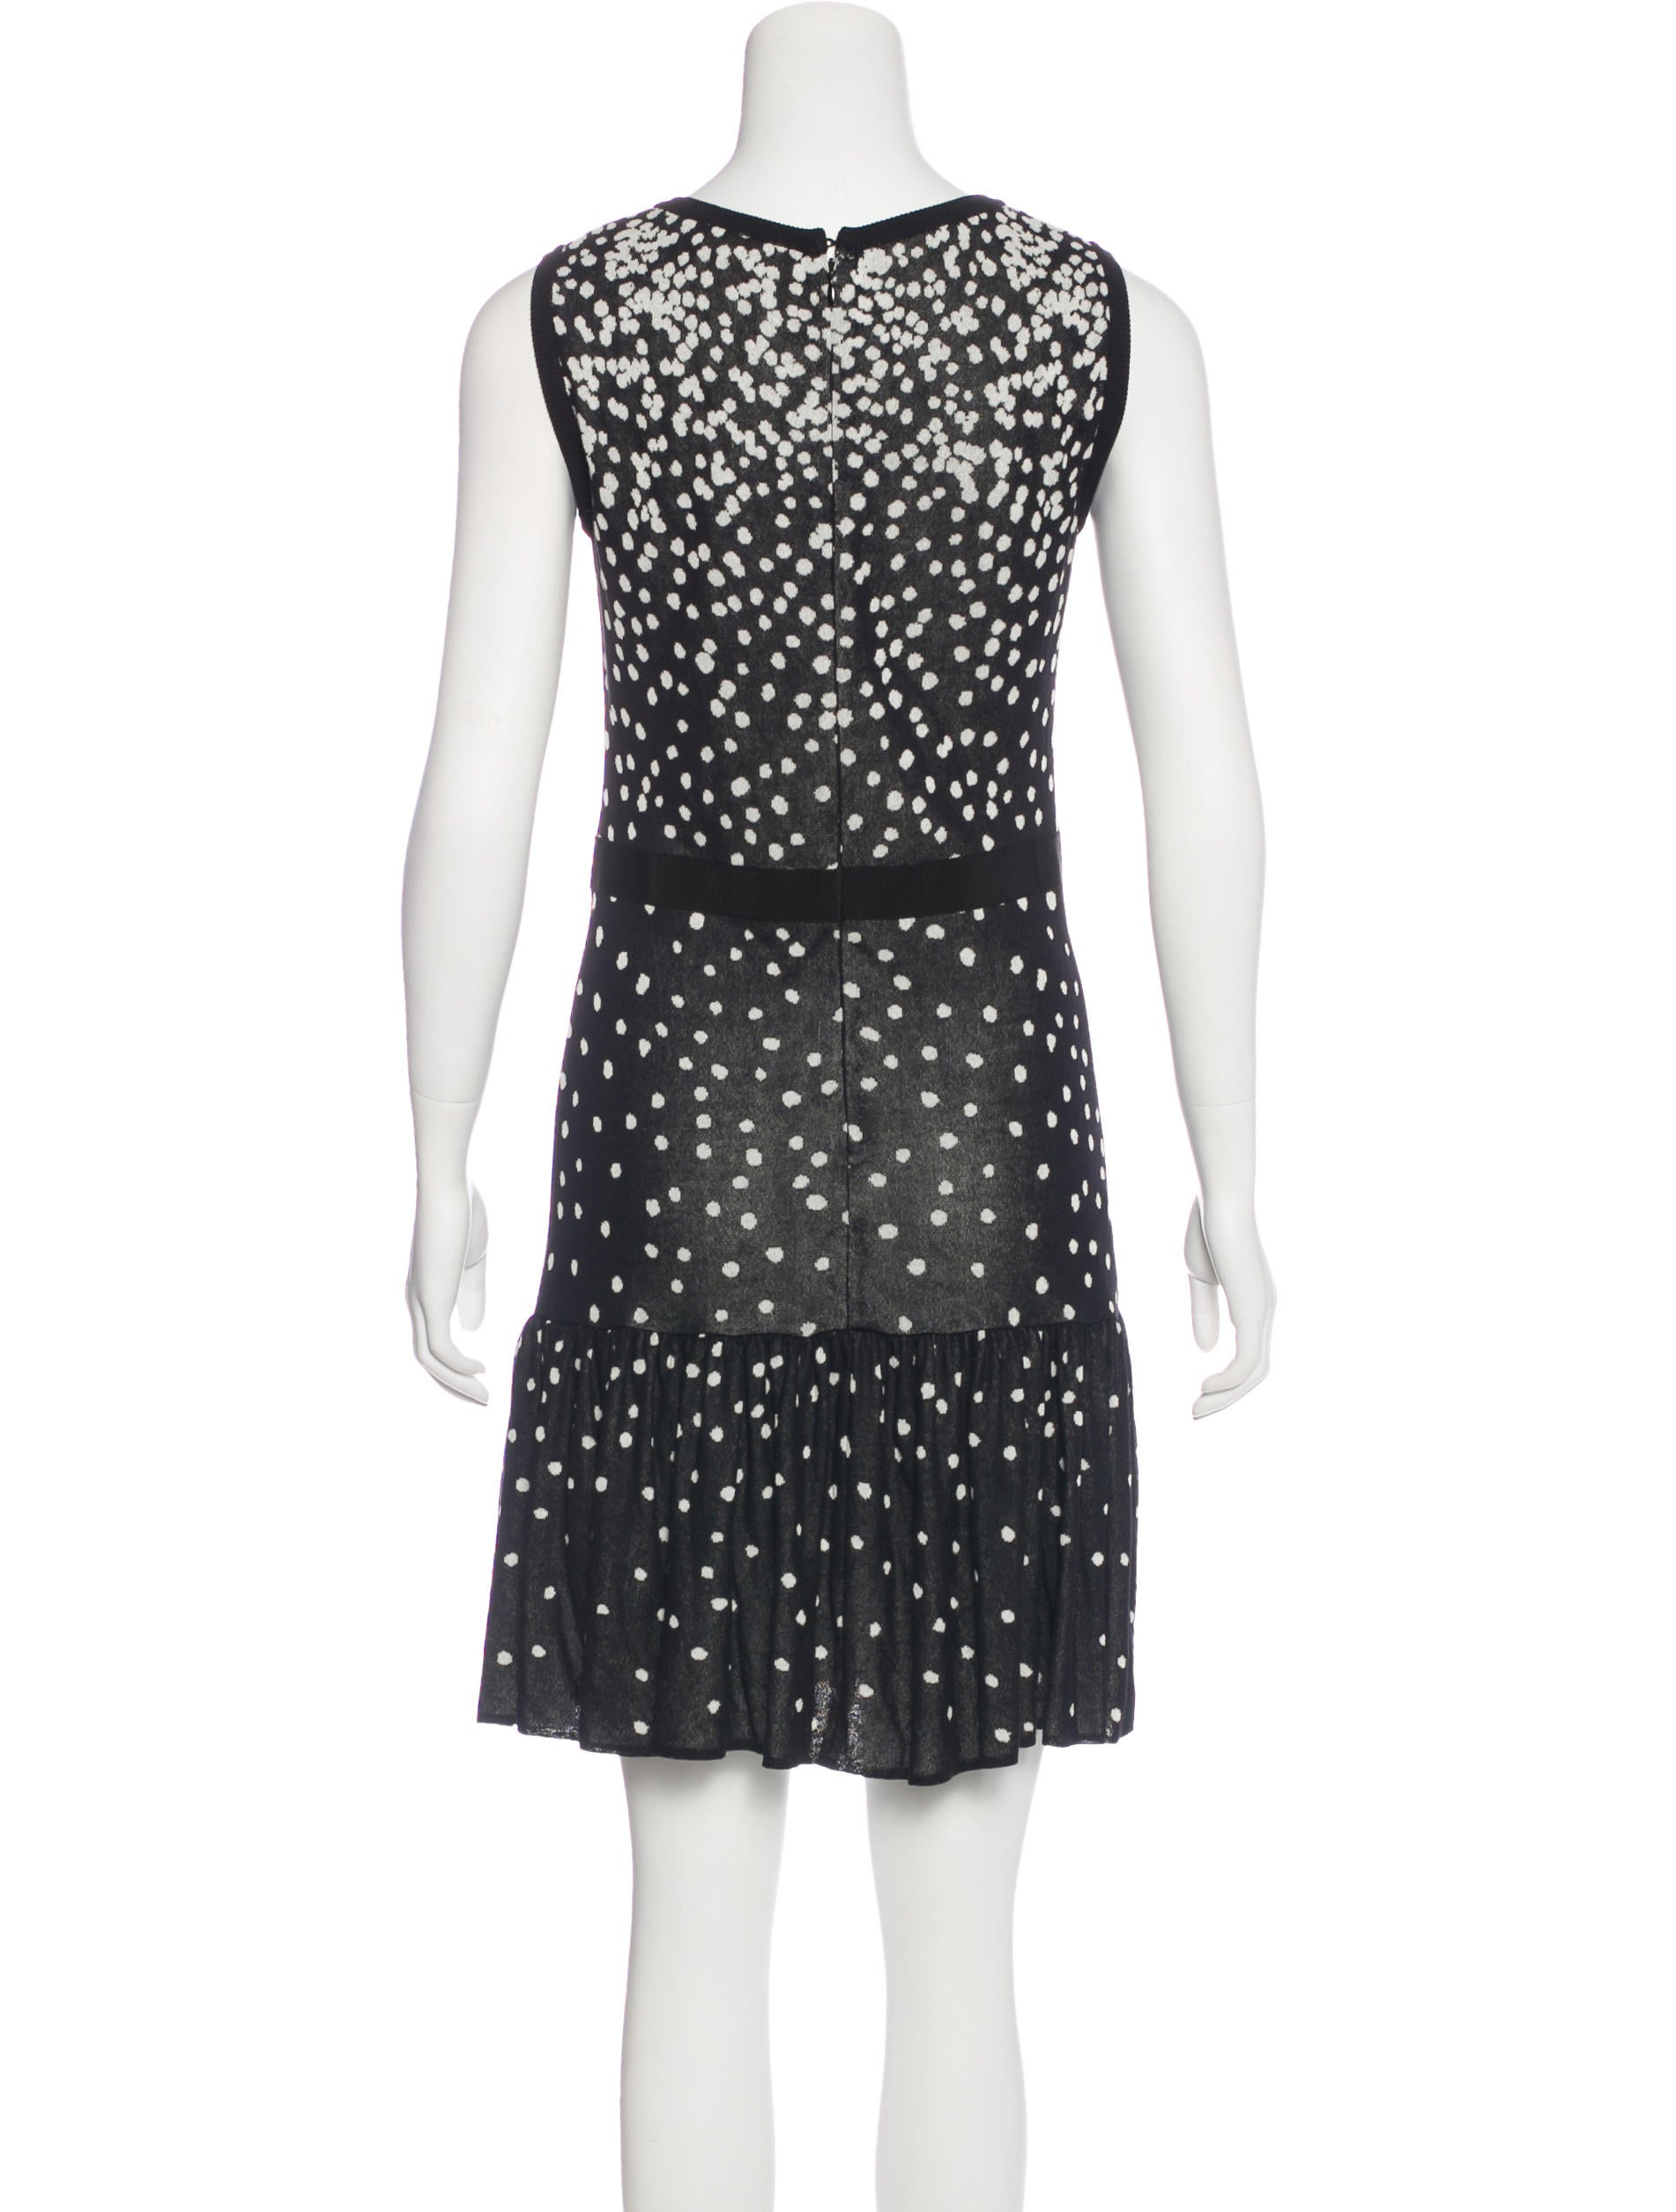 c87a3477722 Giambattista Valli Polka Dot Knee-Length Dress - Clothing - GIA27174 ...